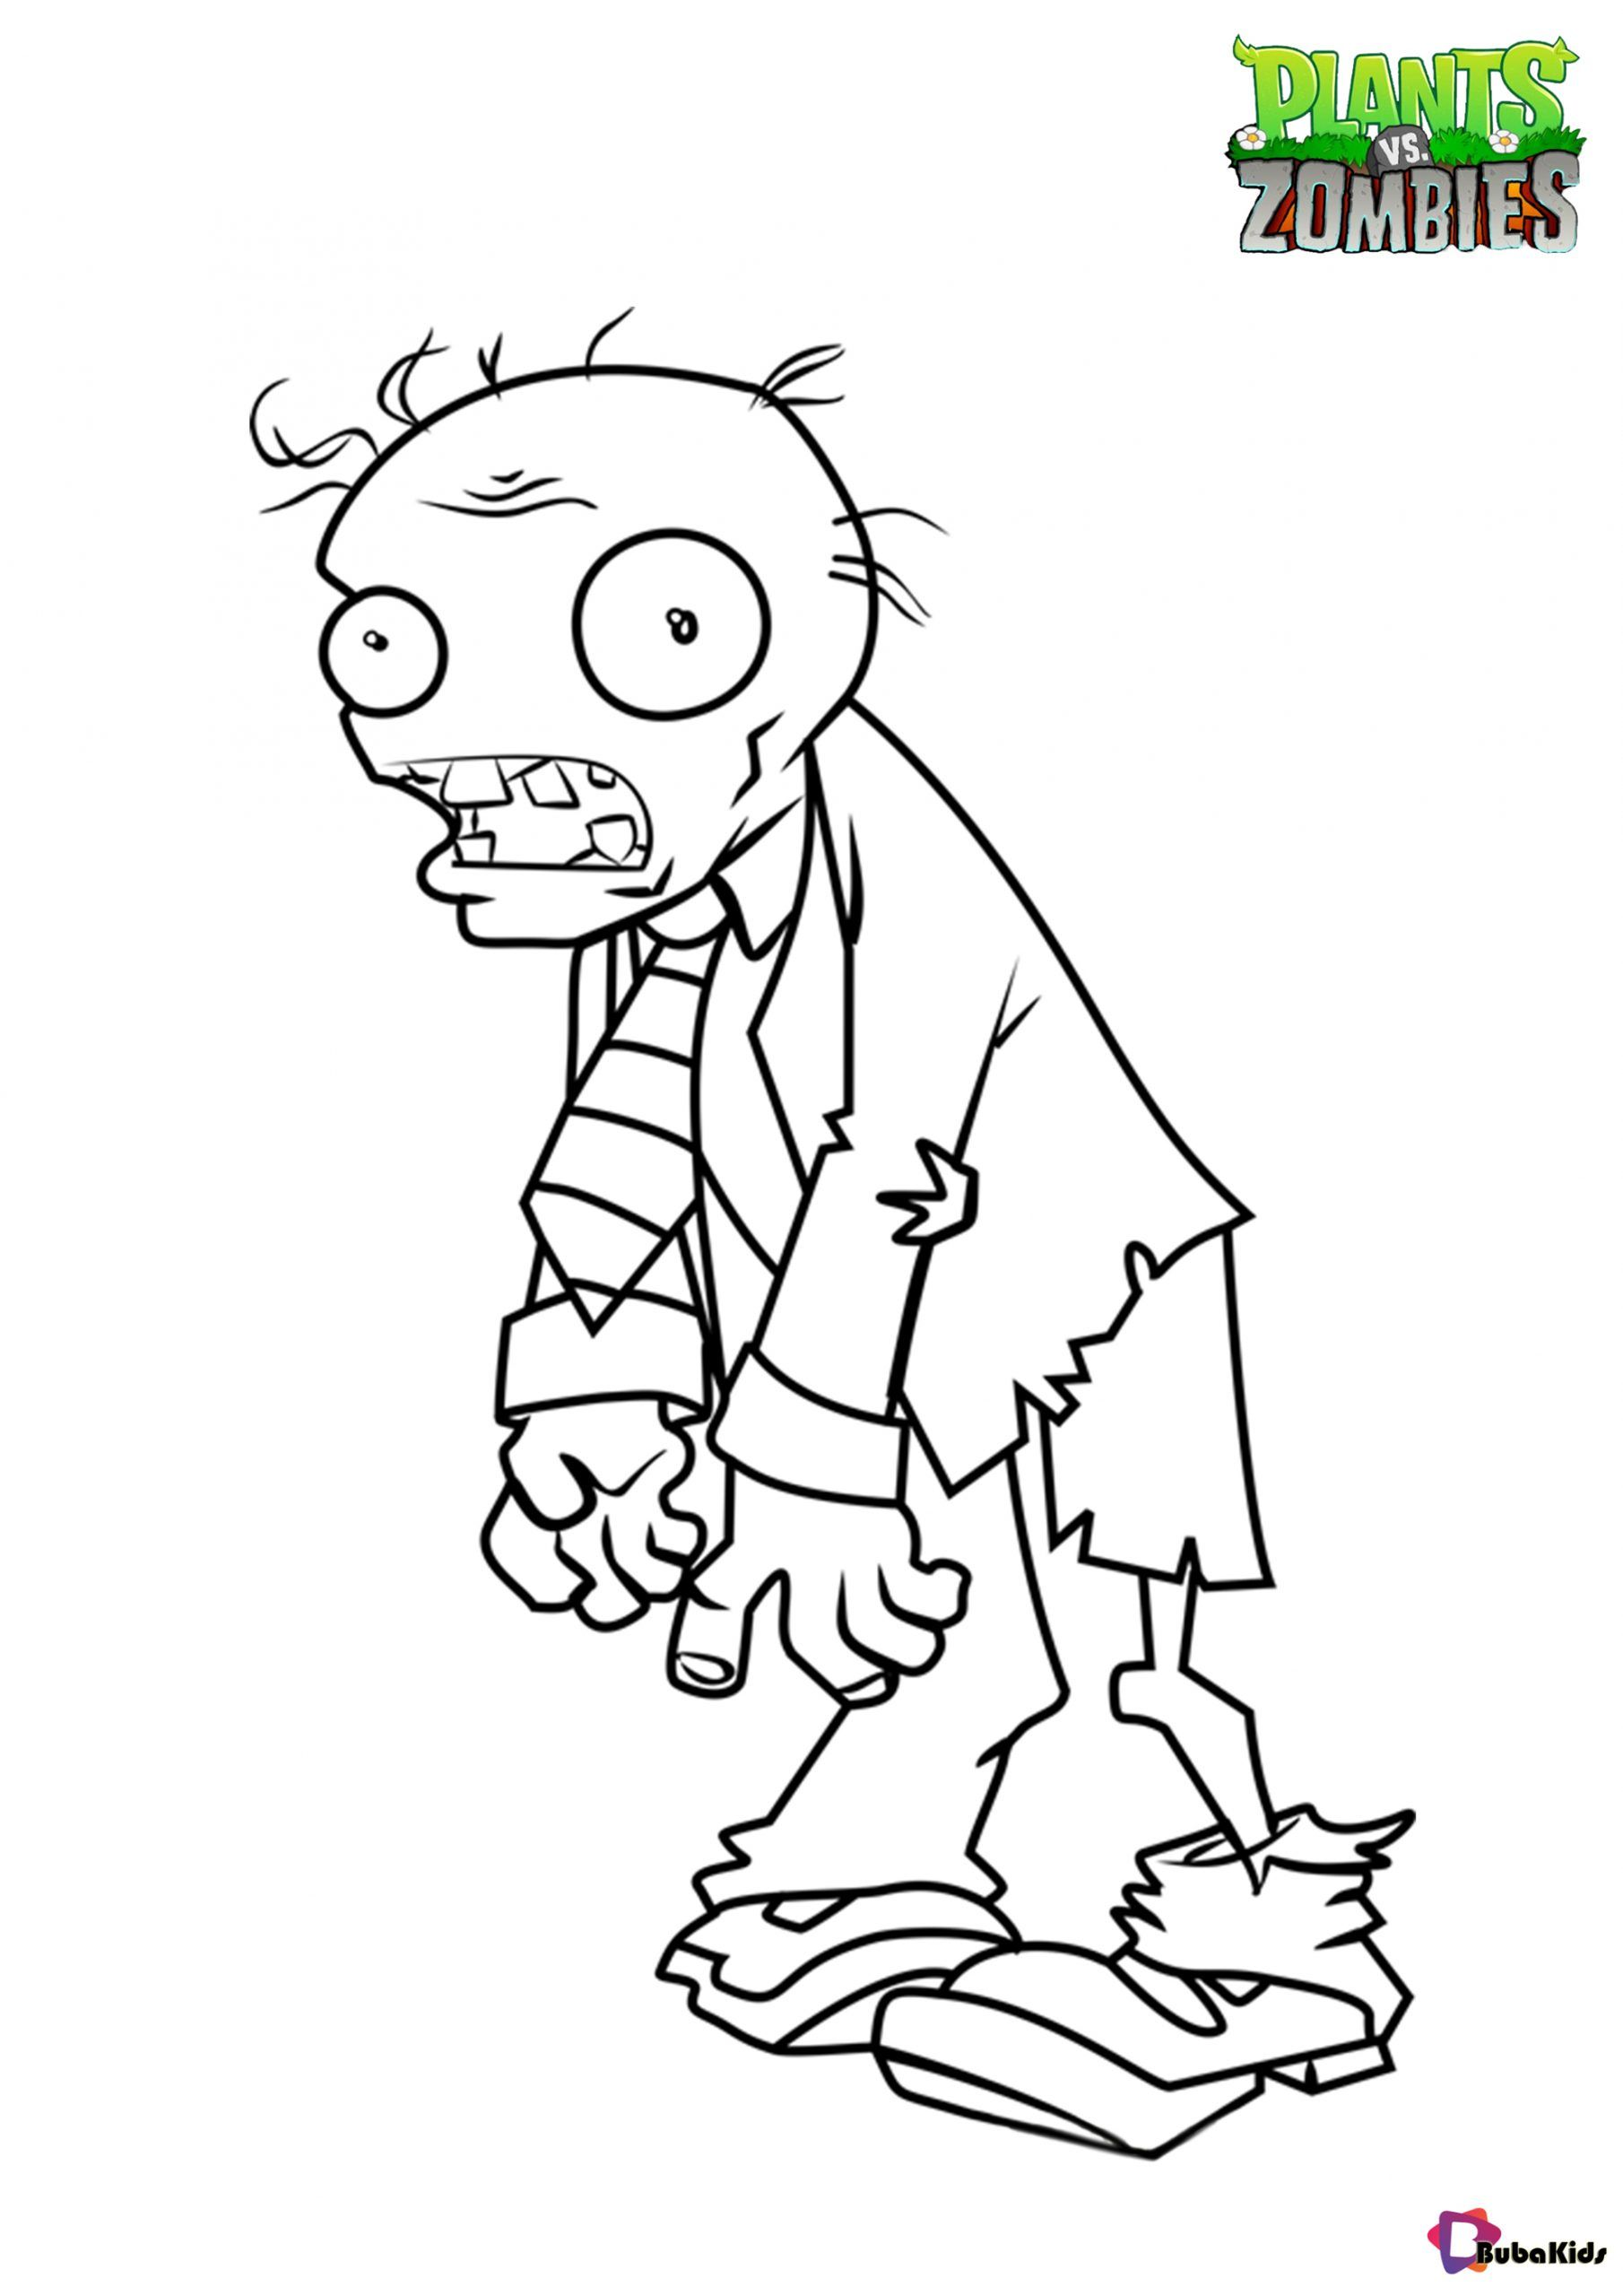 Free Download Plants Vs Zombies Coloring Page Collection Of Cartoon Coloring Pages For Teenage P Cartoon Coloring Pages Coloring Pages Printable Coloring Book